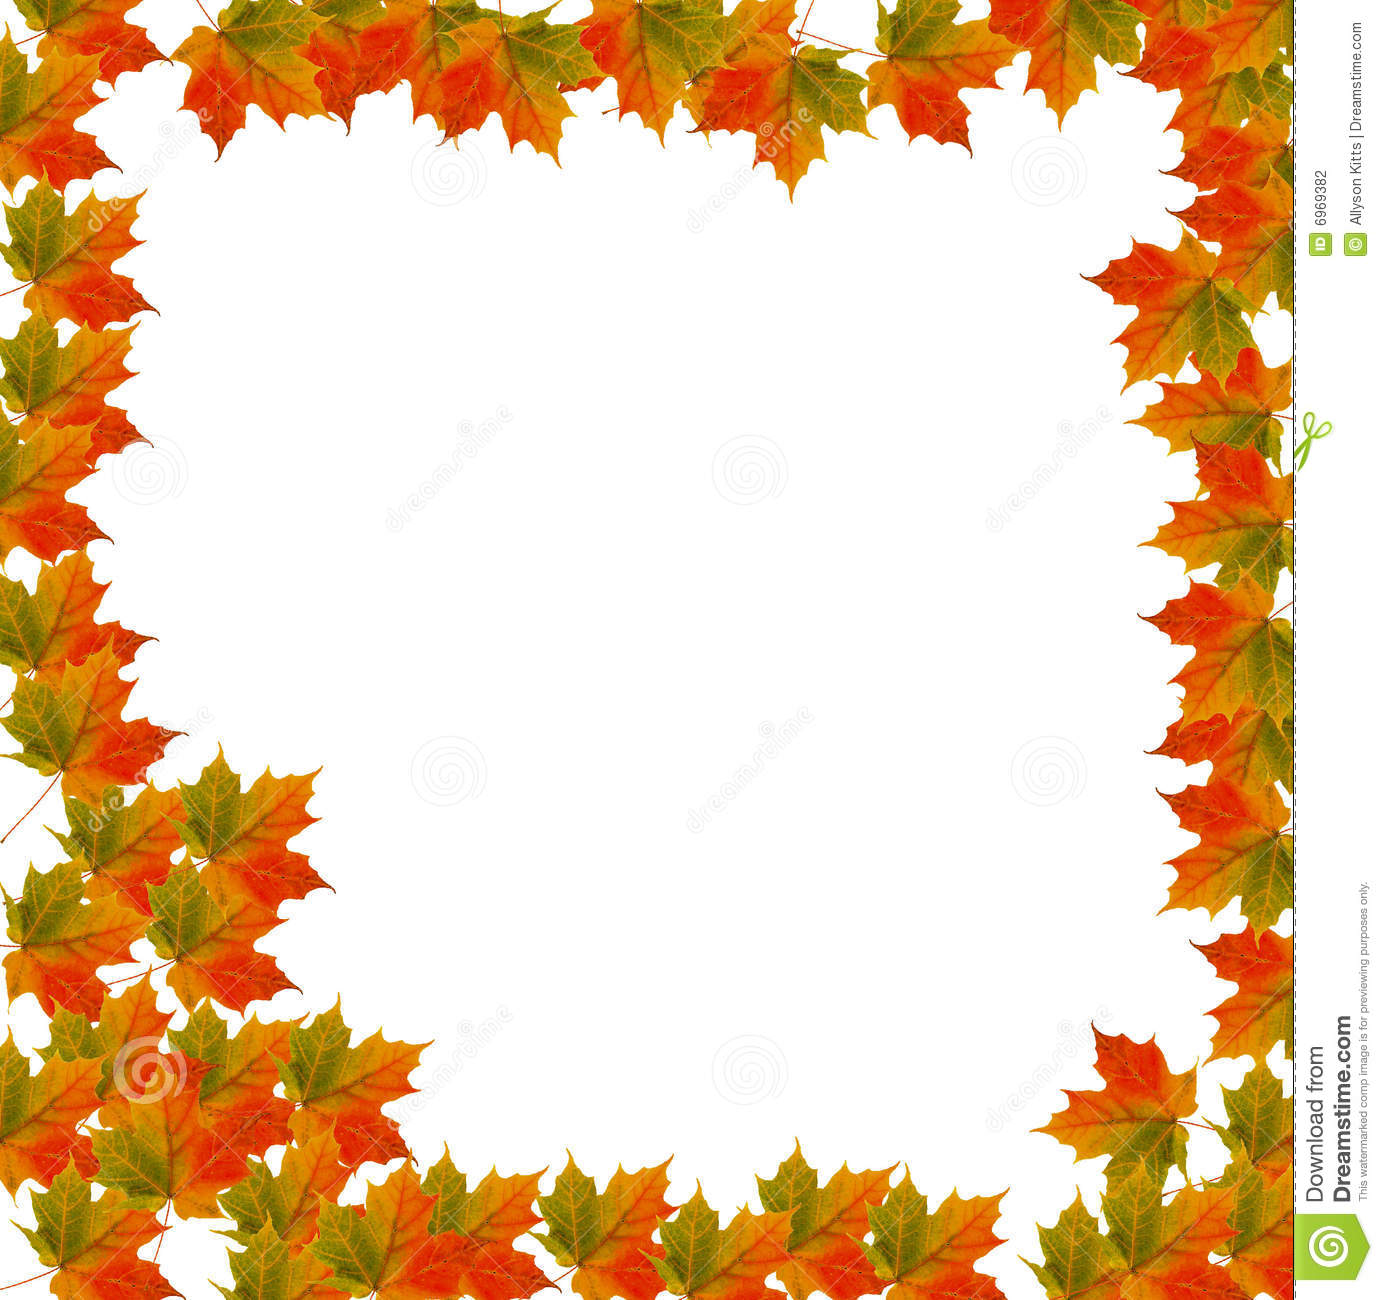 An autumn maple leaf bordered background I created.